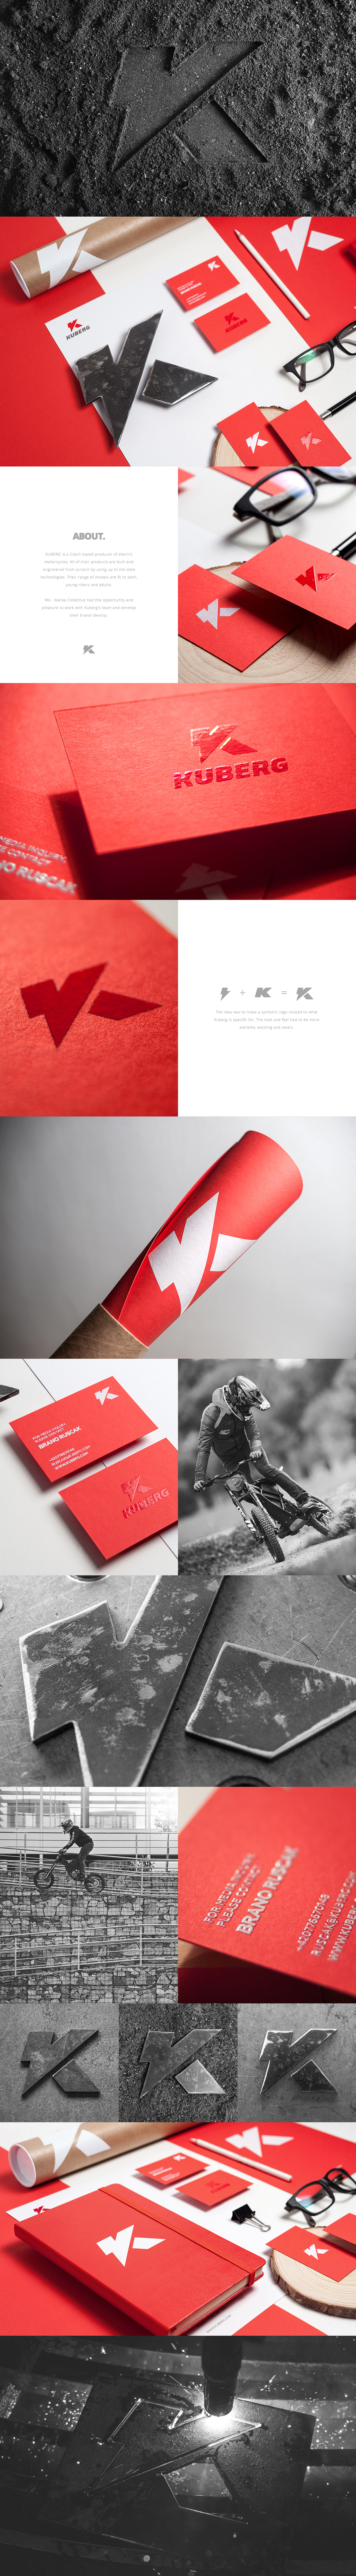 logo mark motorcycle Motocross electric corporate brand identity bulgaria Business Cards